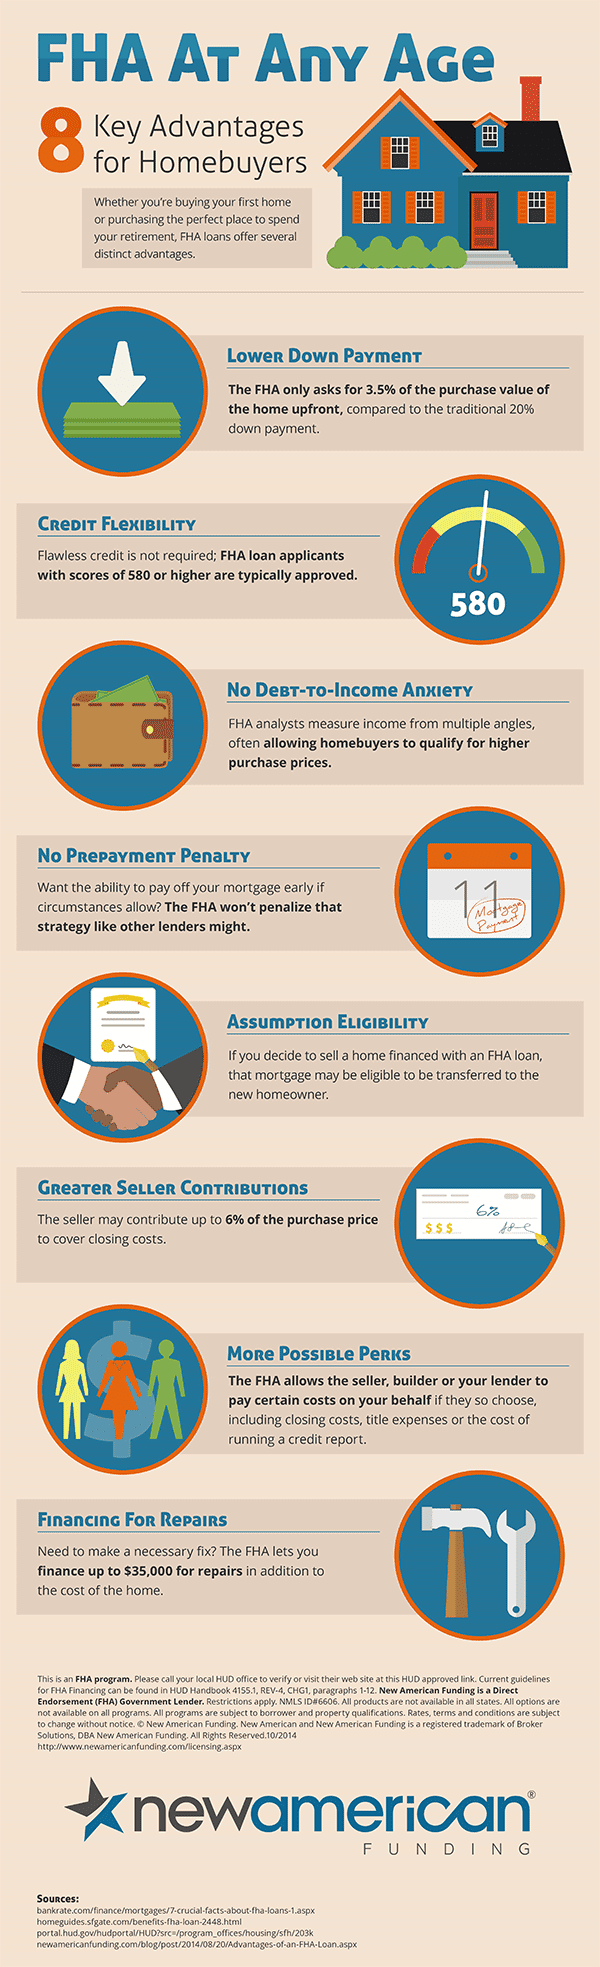 FHA at Any Age Infographic